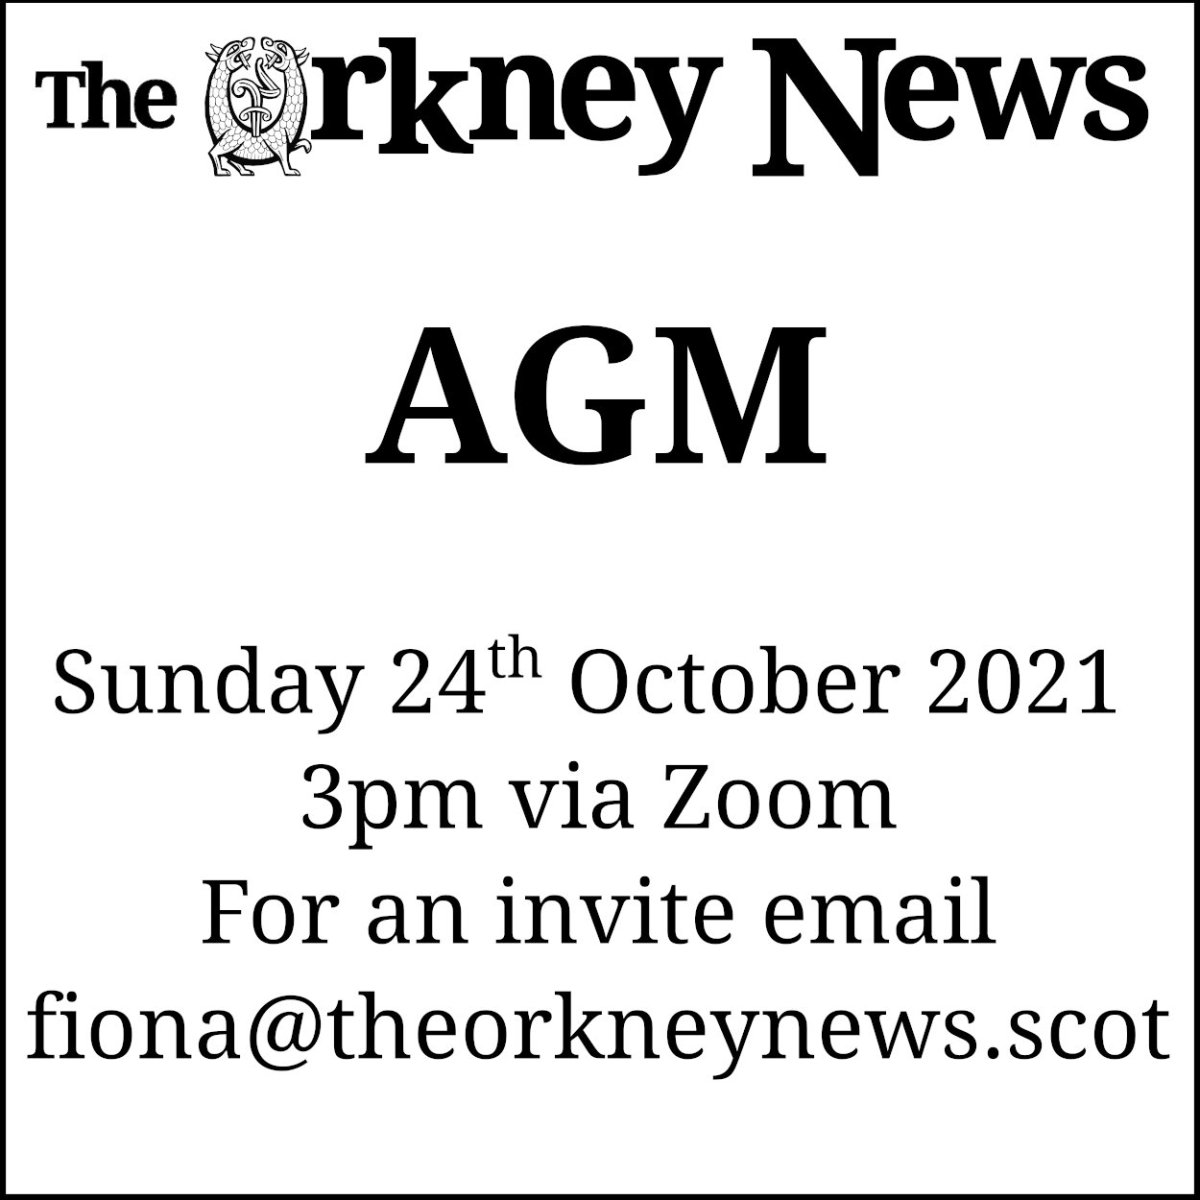 Orkney News AGM 2021 to be held via Zoom at 3pm on Sunday 24th October. Email fiona@theorkneynews.scot if you would like to attend.